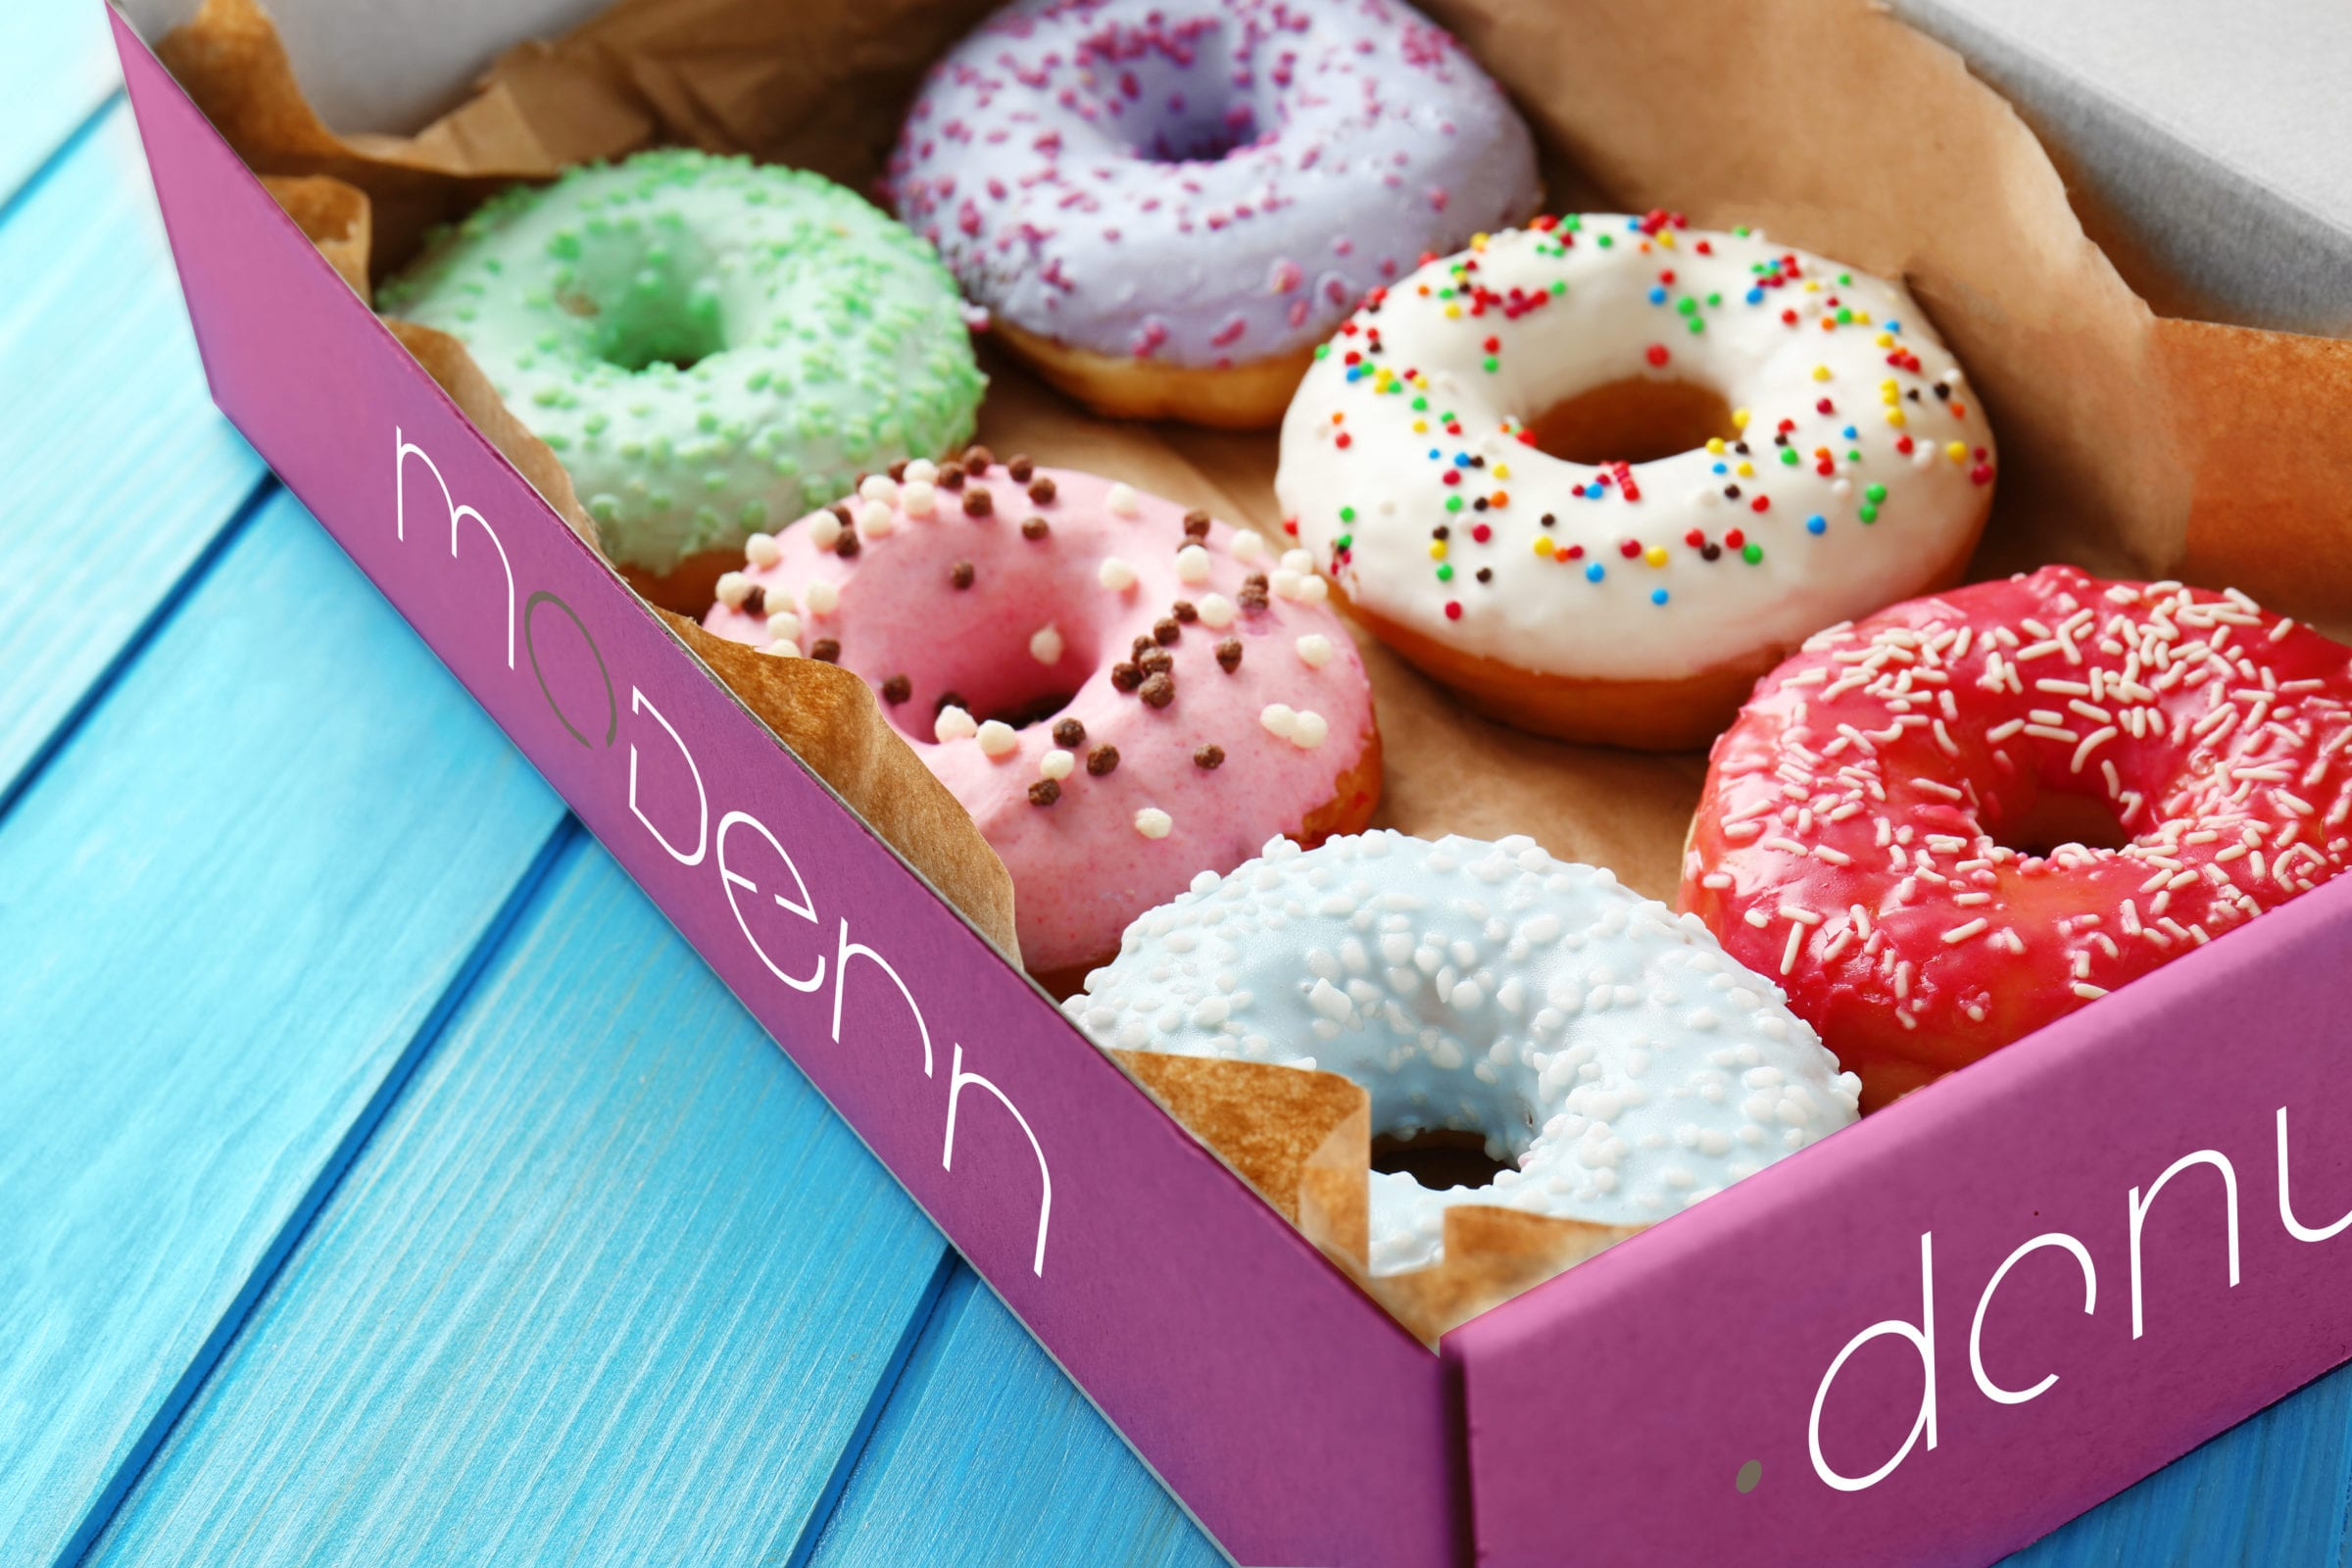 A box of delicious donuts by Modern Donut